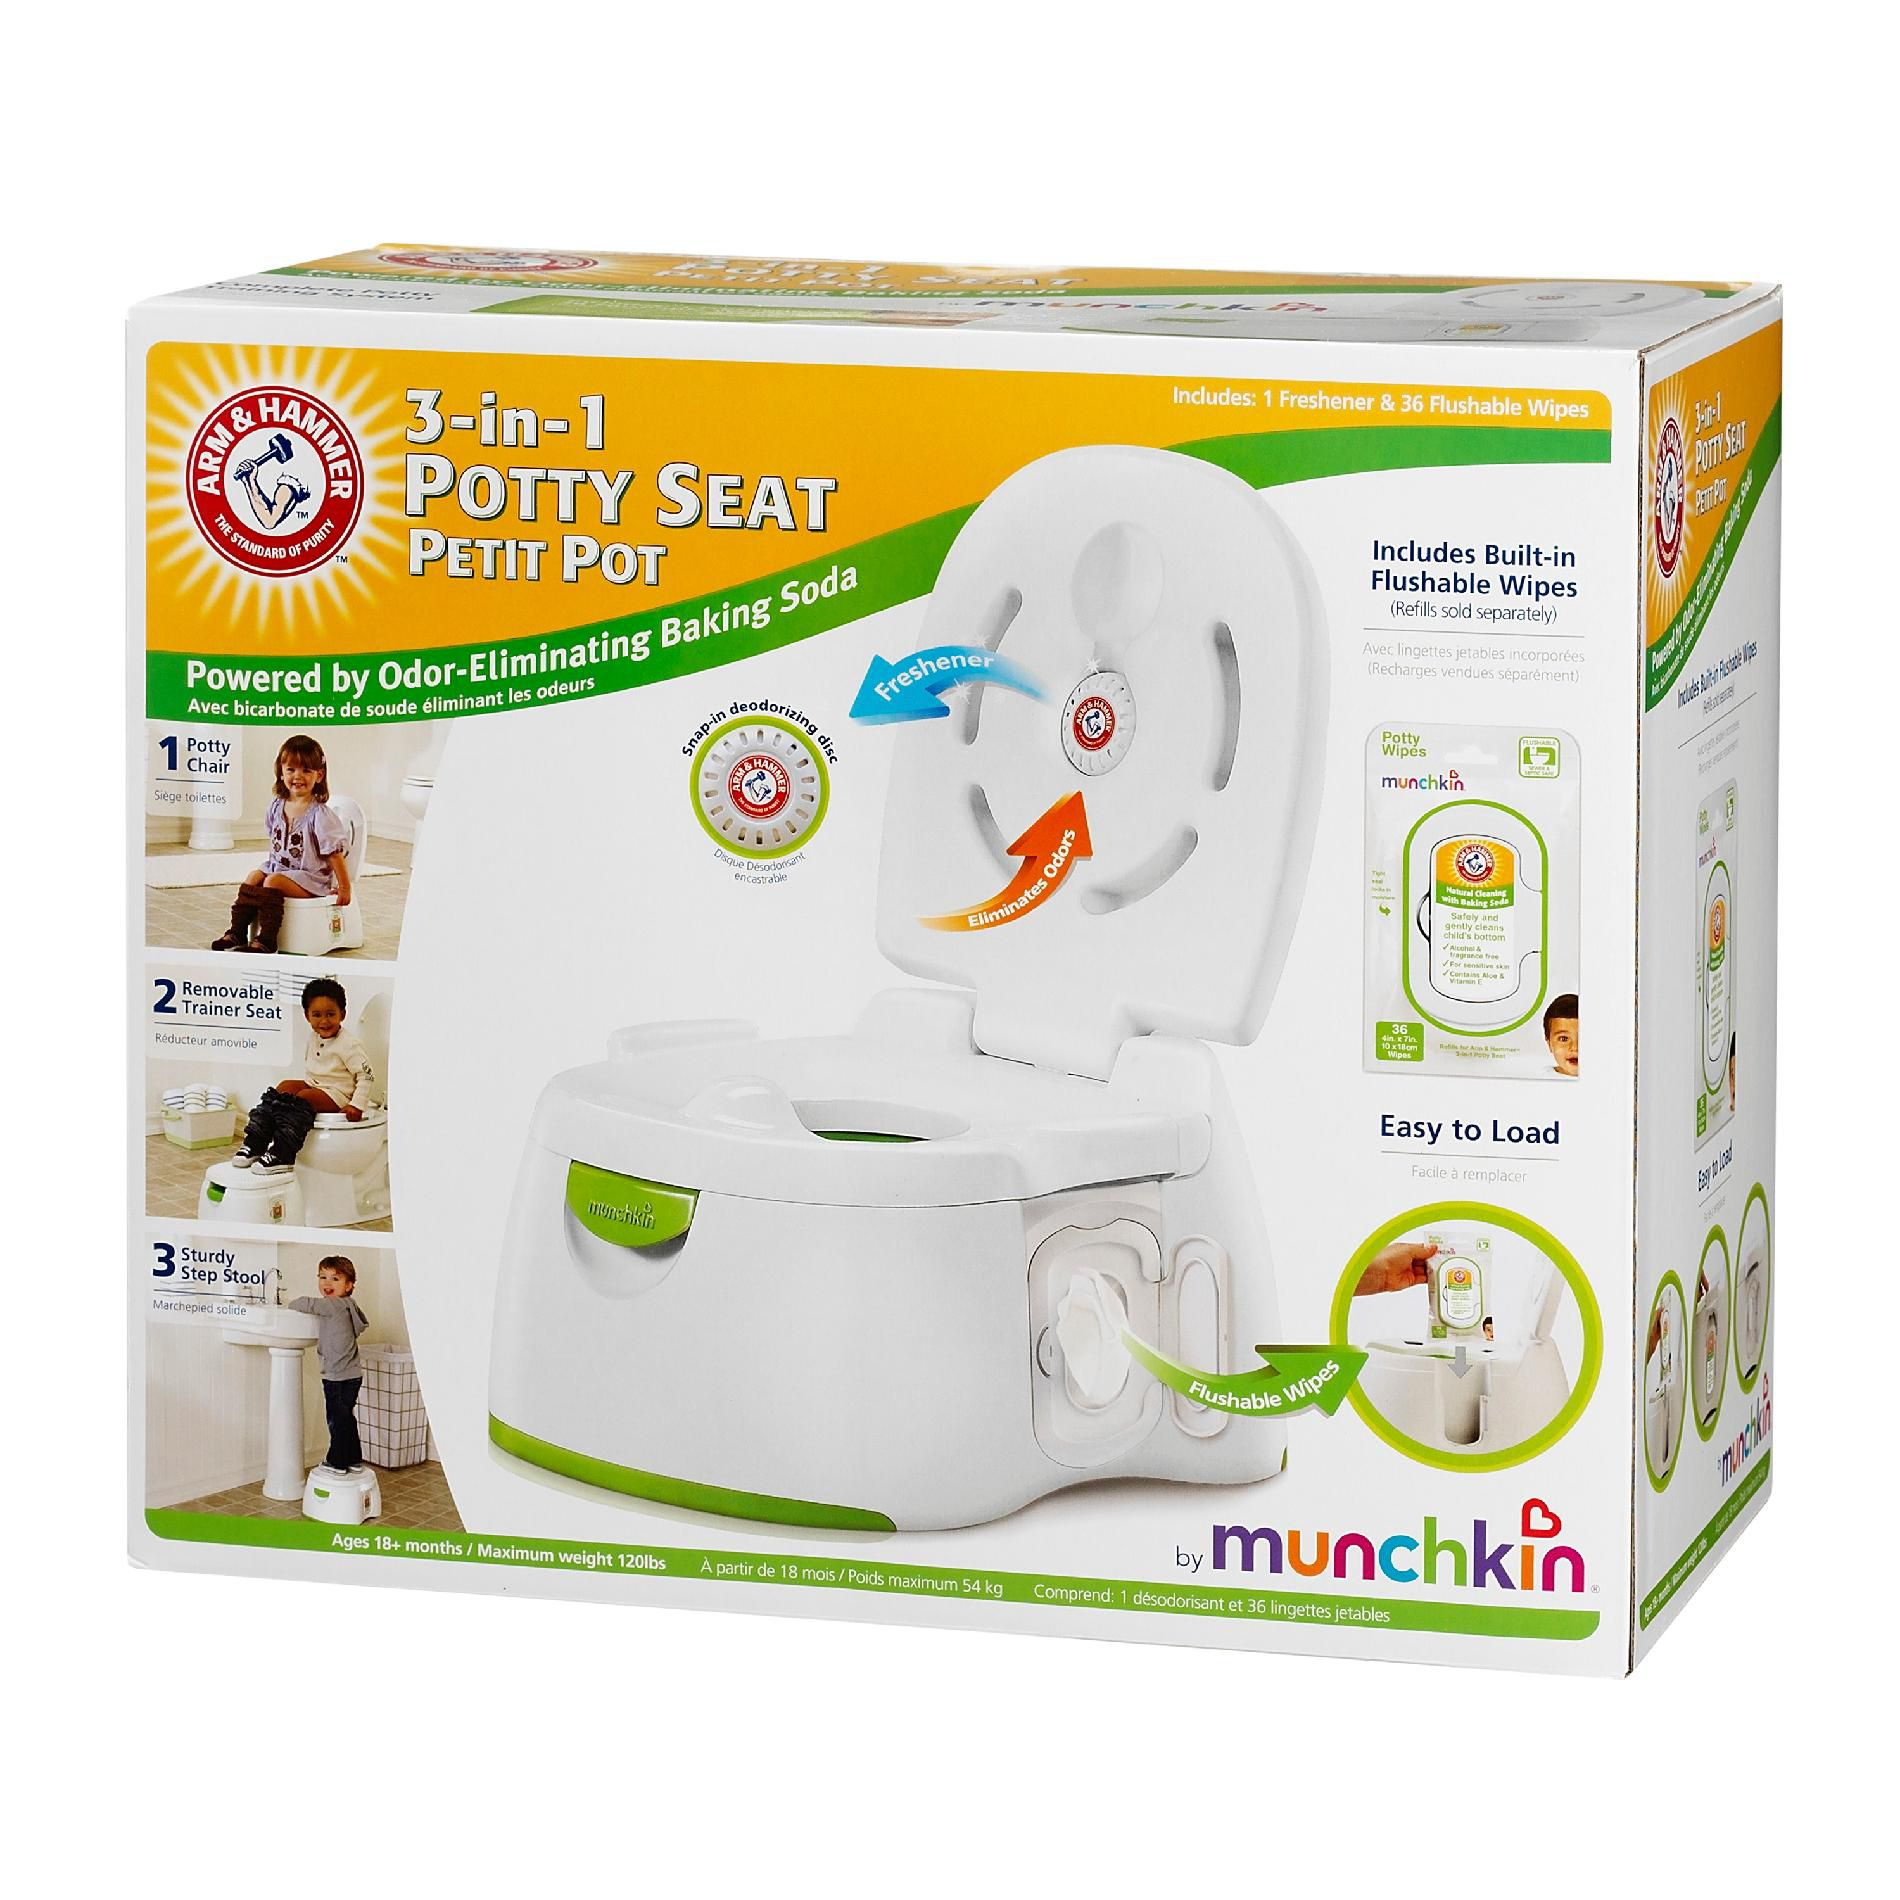 ARM HAMMER 3-IN-1 POTTY SEAT